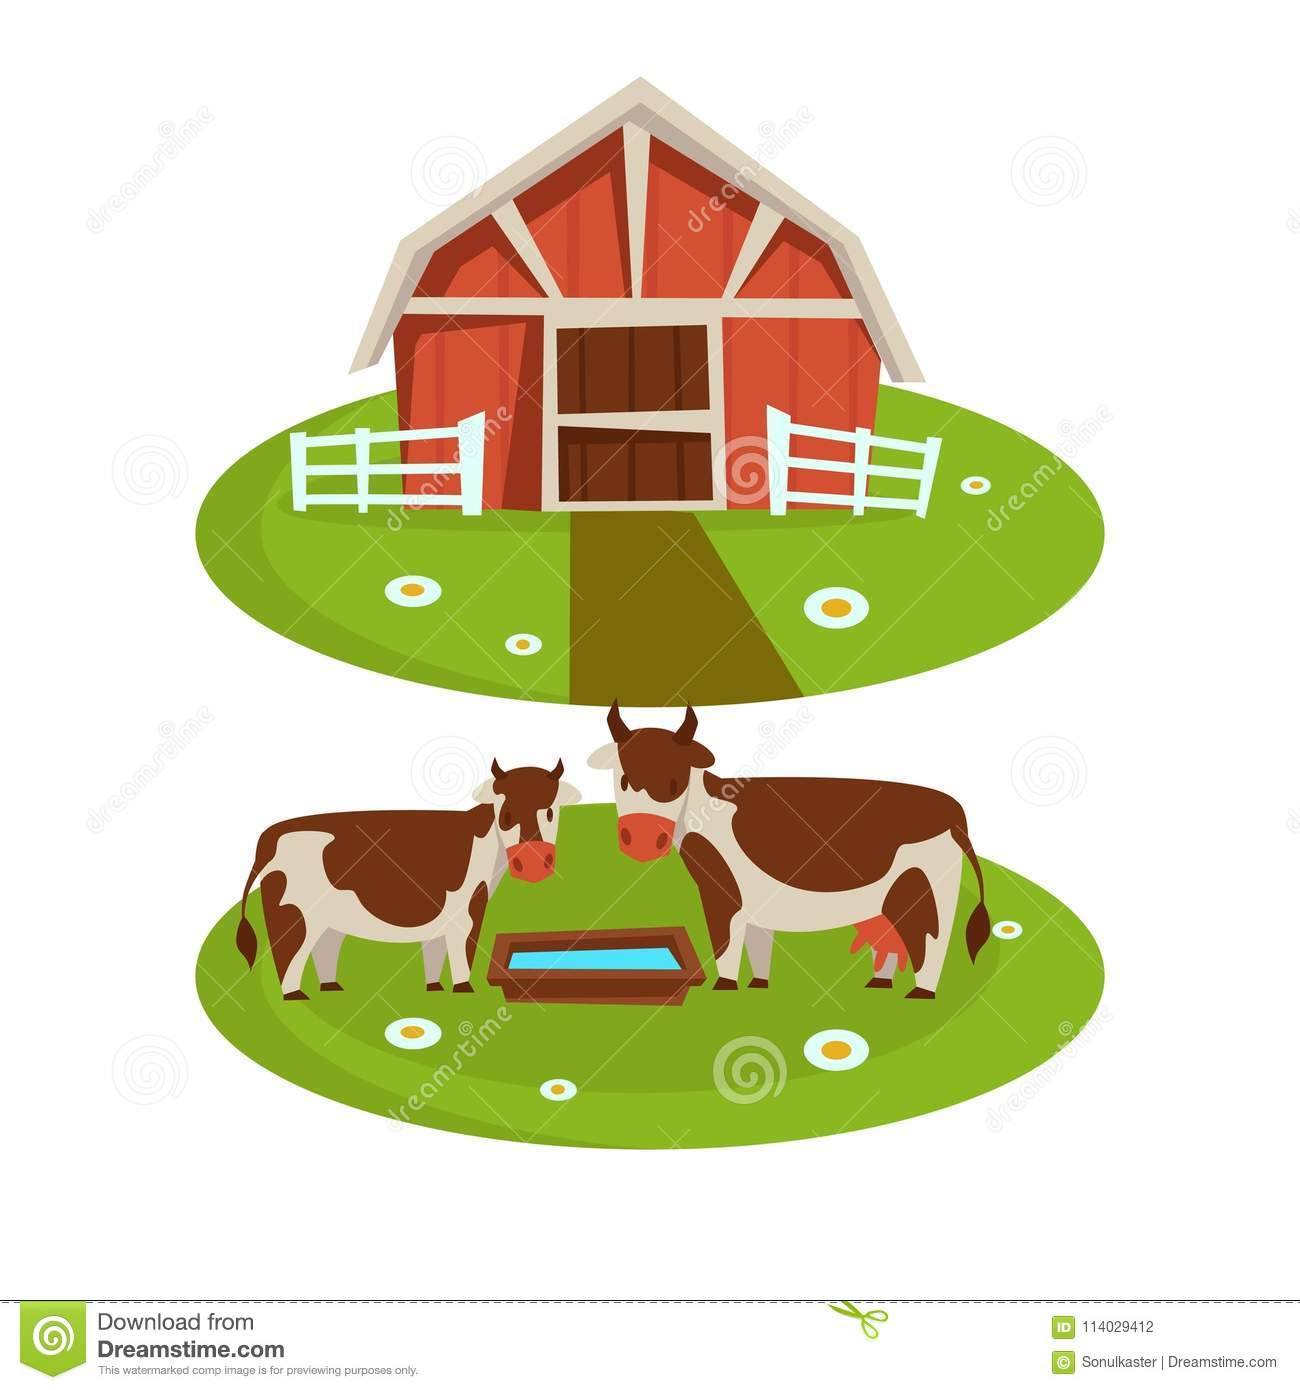 Download Farm House Barn Or Farmer Agriculture And Cattle Farming Flat Cartoon Icons Stock Vector